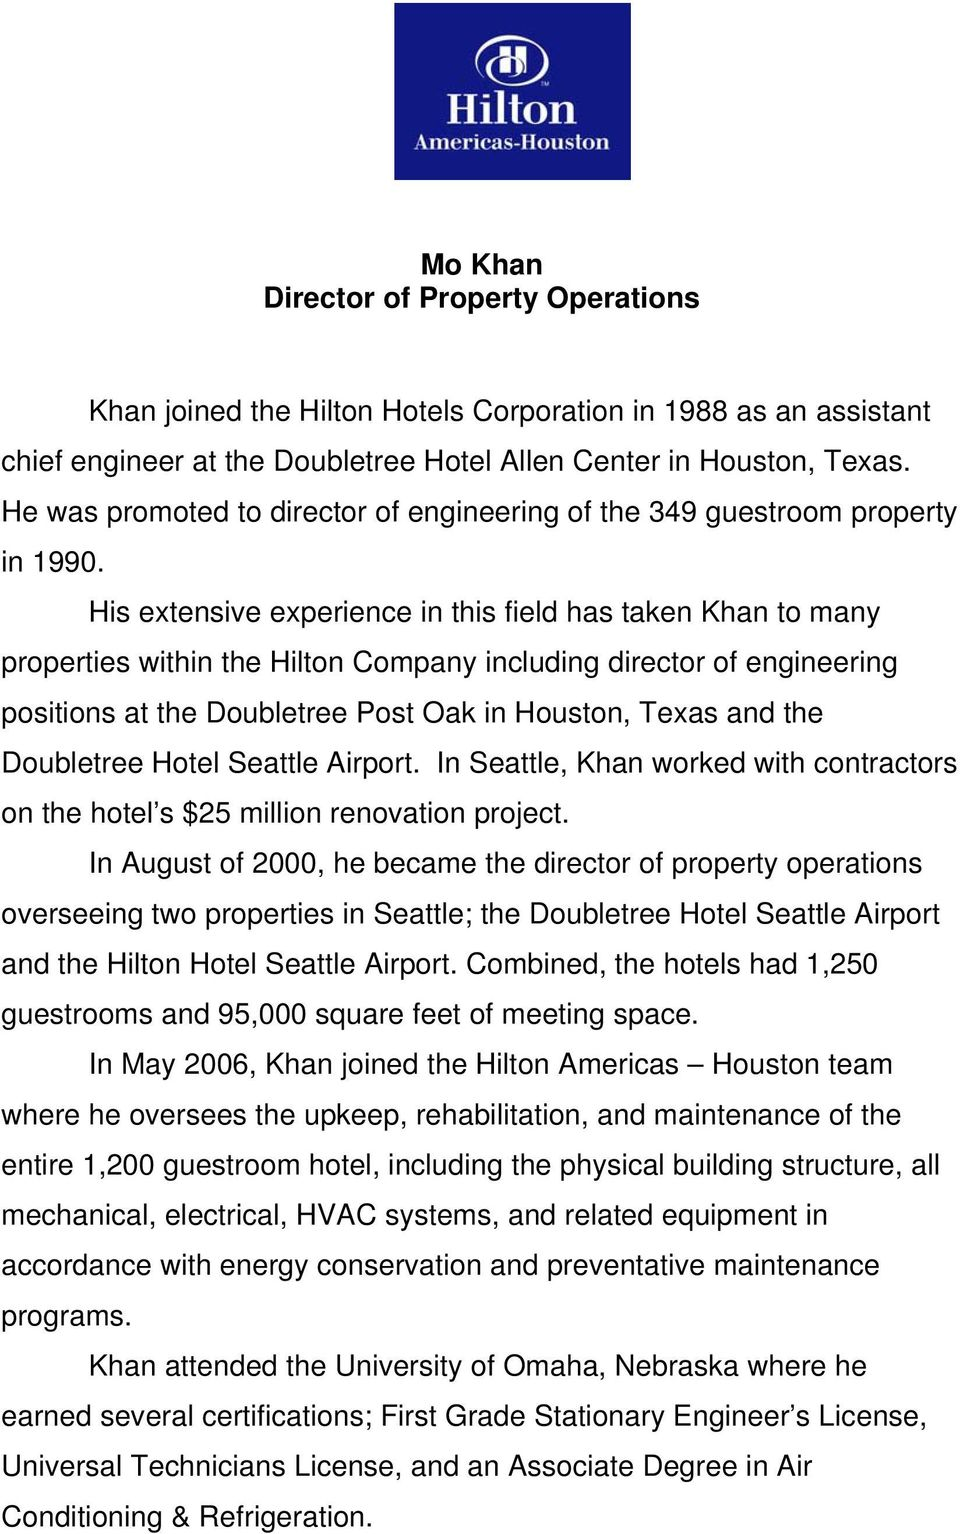 His extensive experience in this field has taken Khan to many properties within the Hilton Company including director of engineering positions at the Doubletree Post Oak in Houston, Texas and the